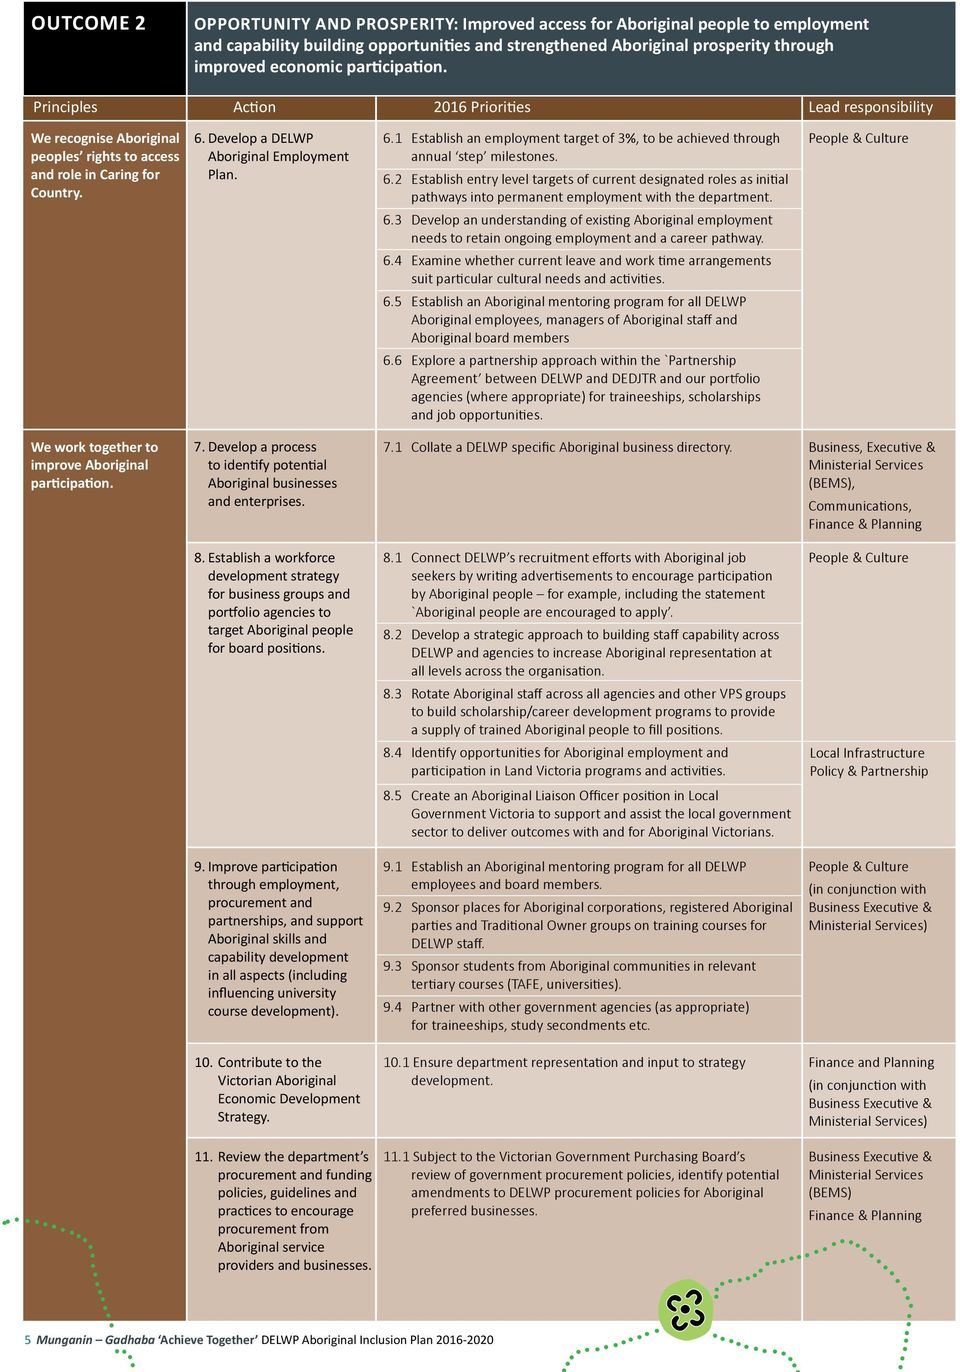 Develop a DELWP Aboriginal Employment Plan. 6.1 Establish an employment target of 3%, to be achieved through annual step milestones. 6.2 Establish entry level targets of current designated roles as initial pathways into permanent employment with the department.